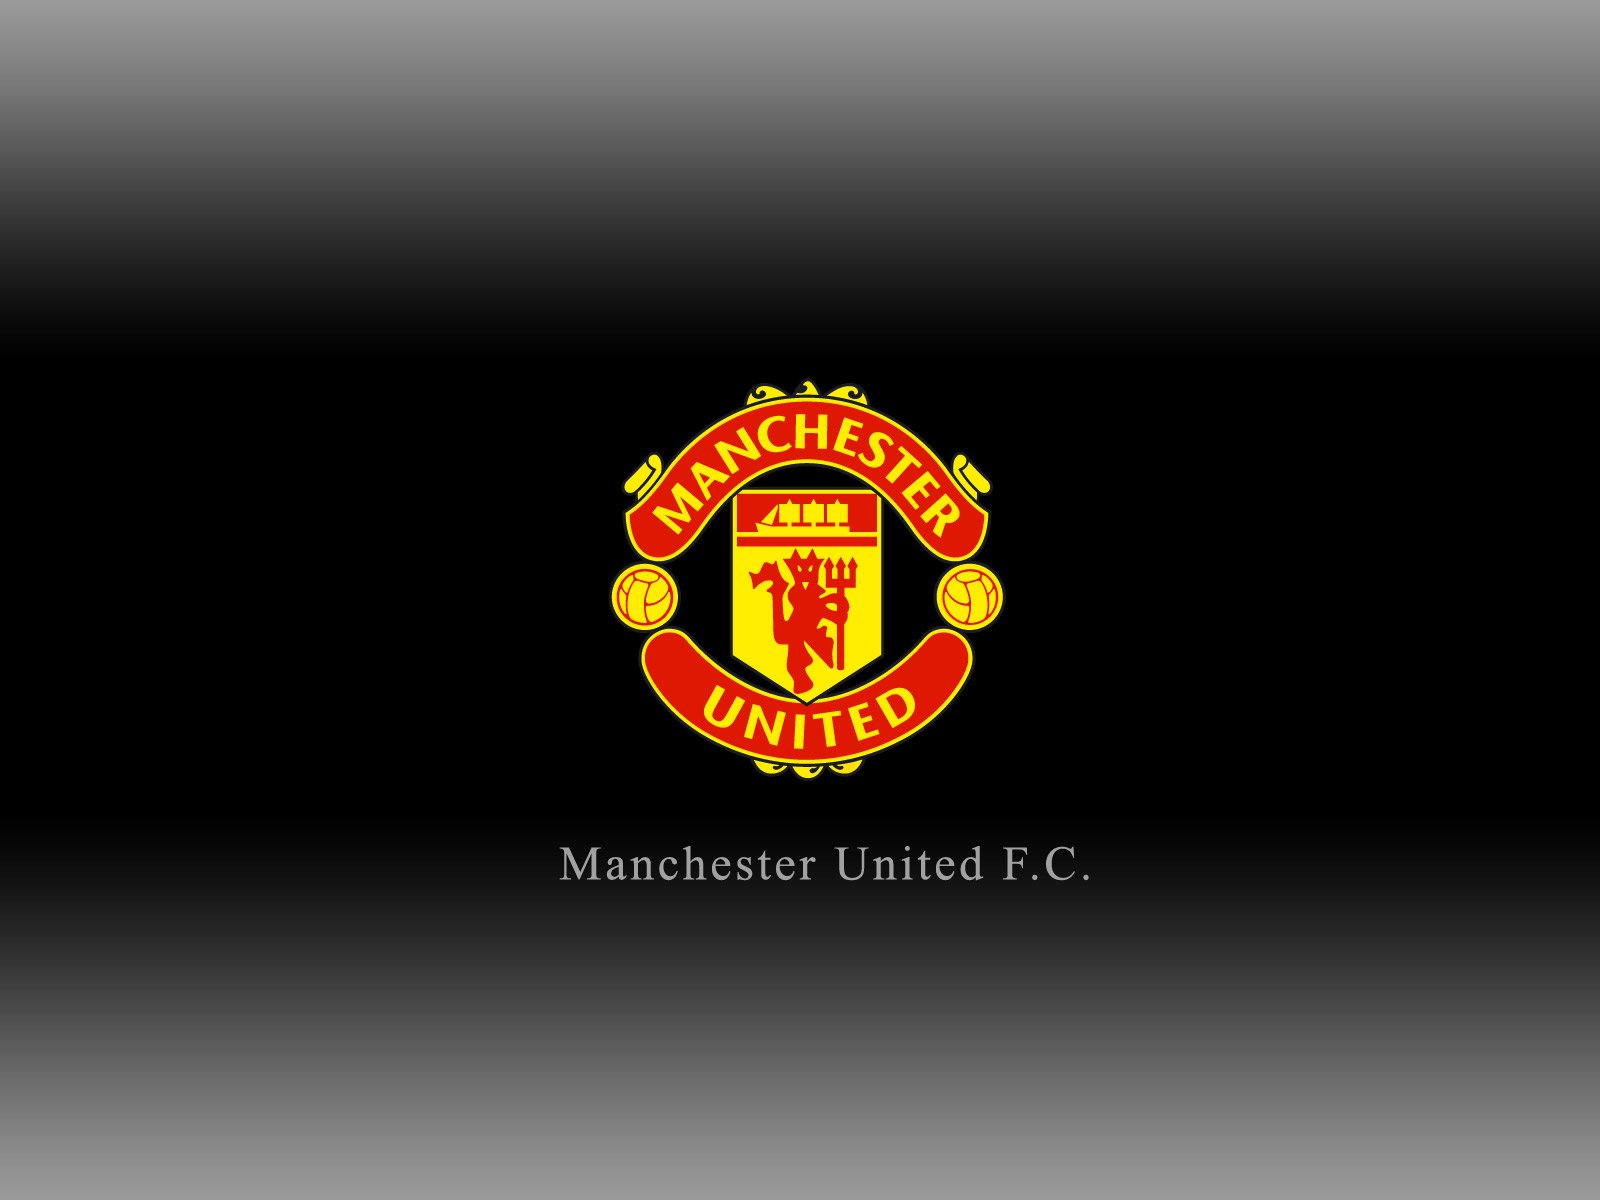 Man utd mobile wallpapers manchester united wallpaper